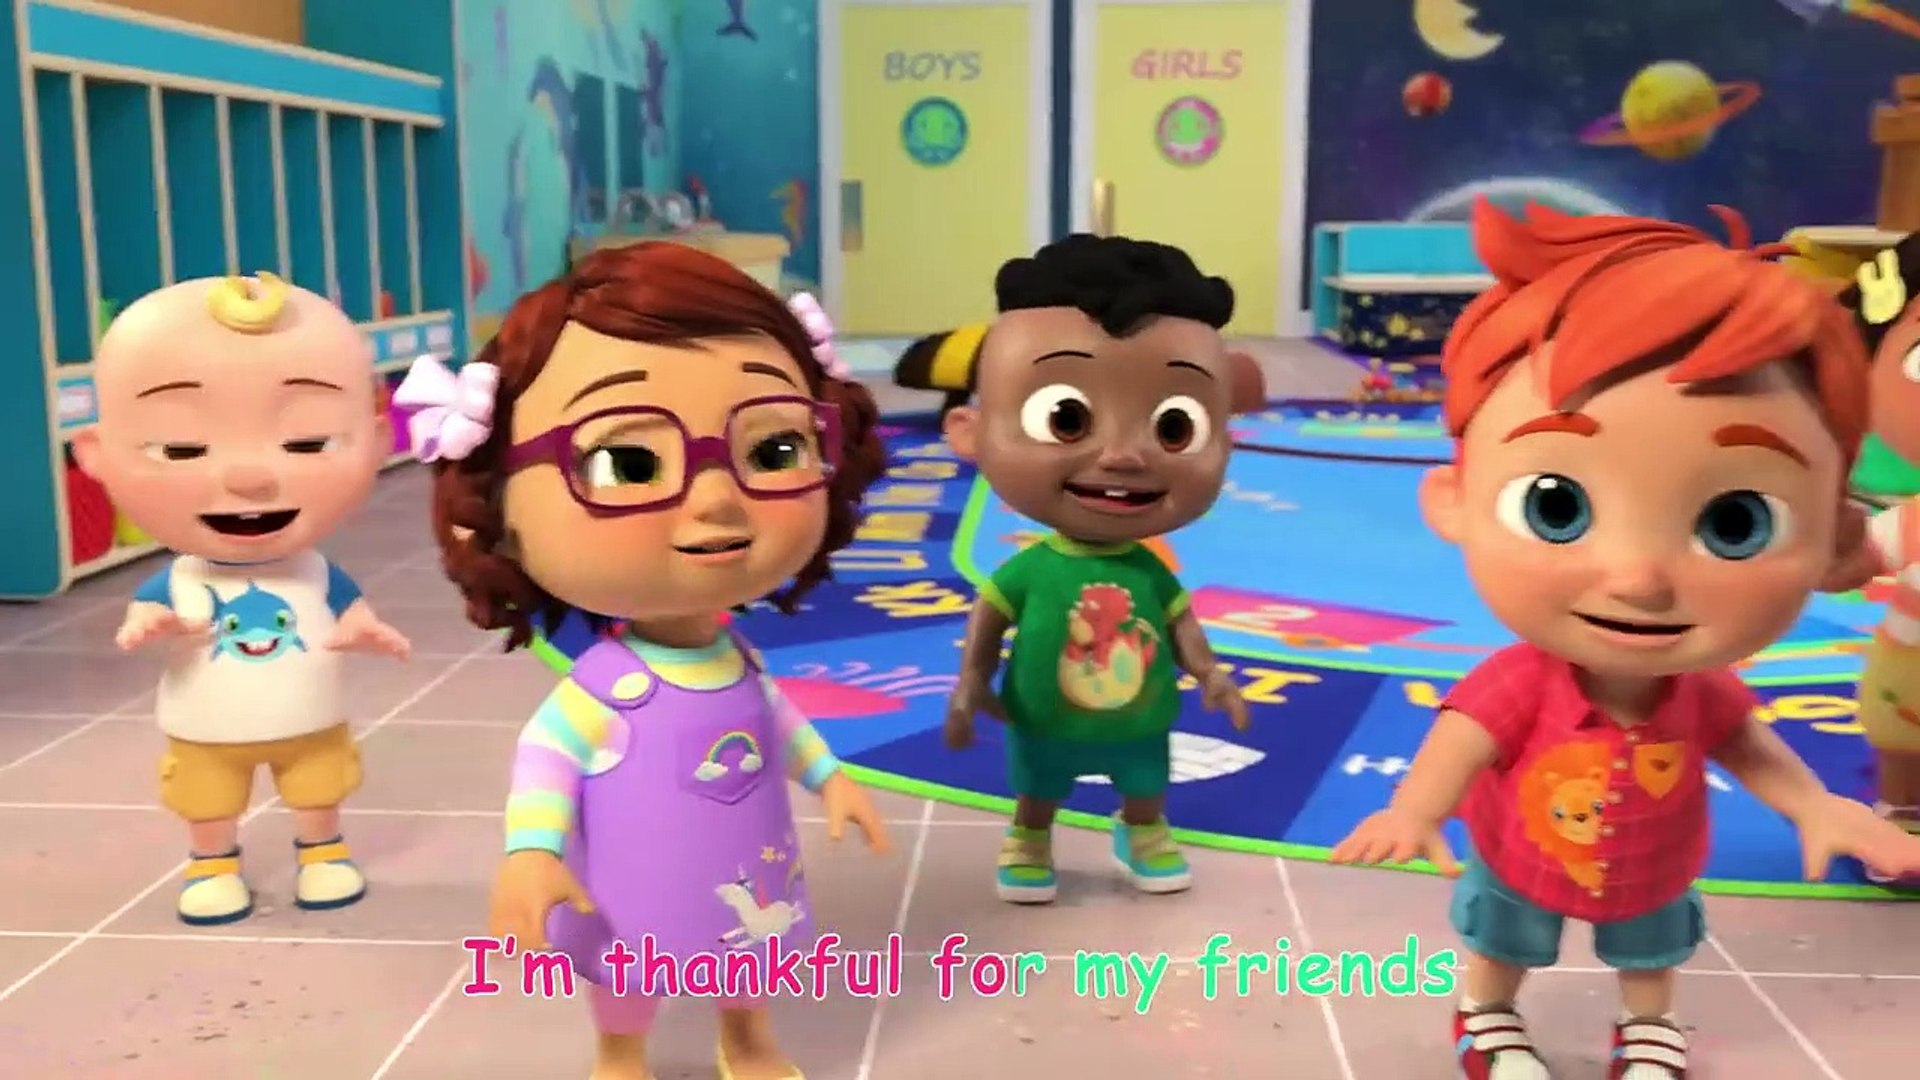 Thank You Song School Cocomelon Nursery Rhymes Kids Songs Video Dailymotion